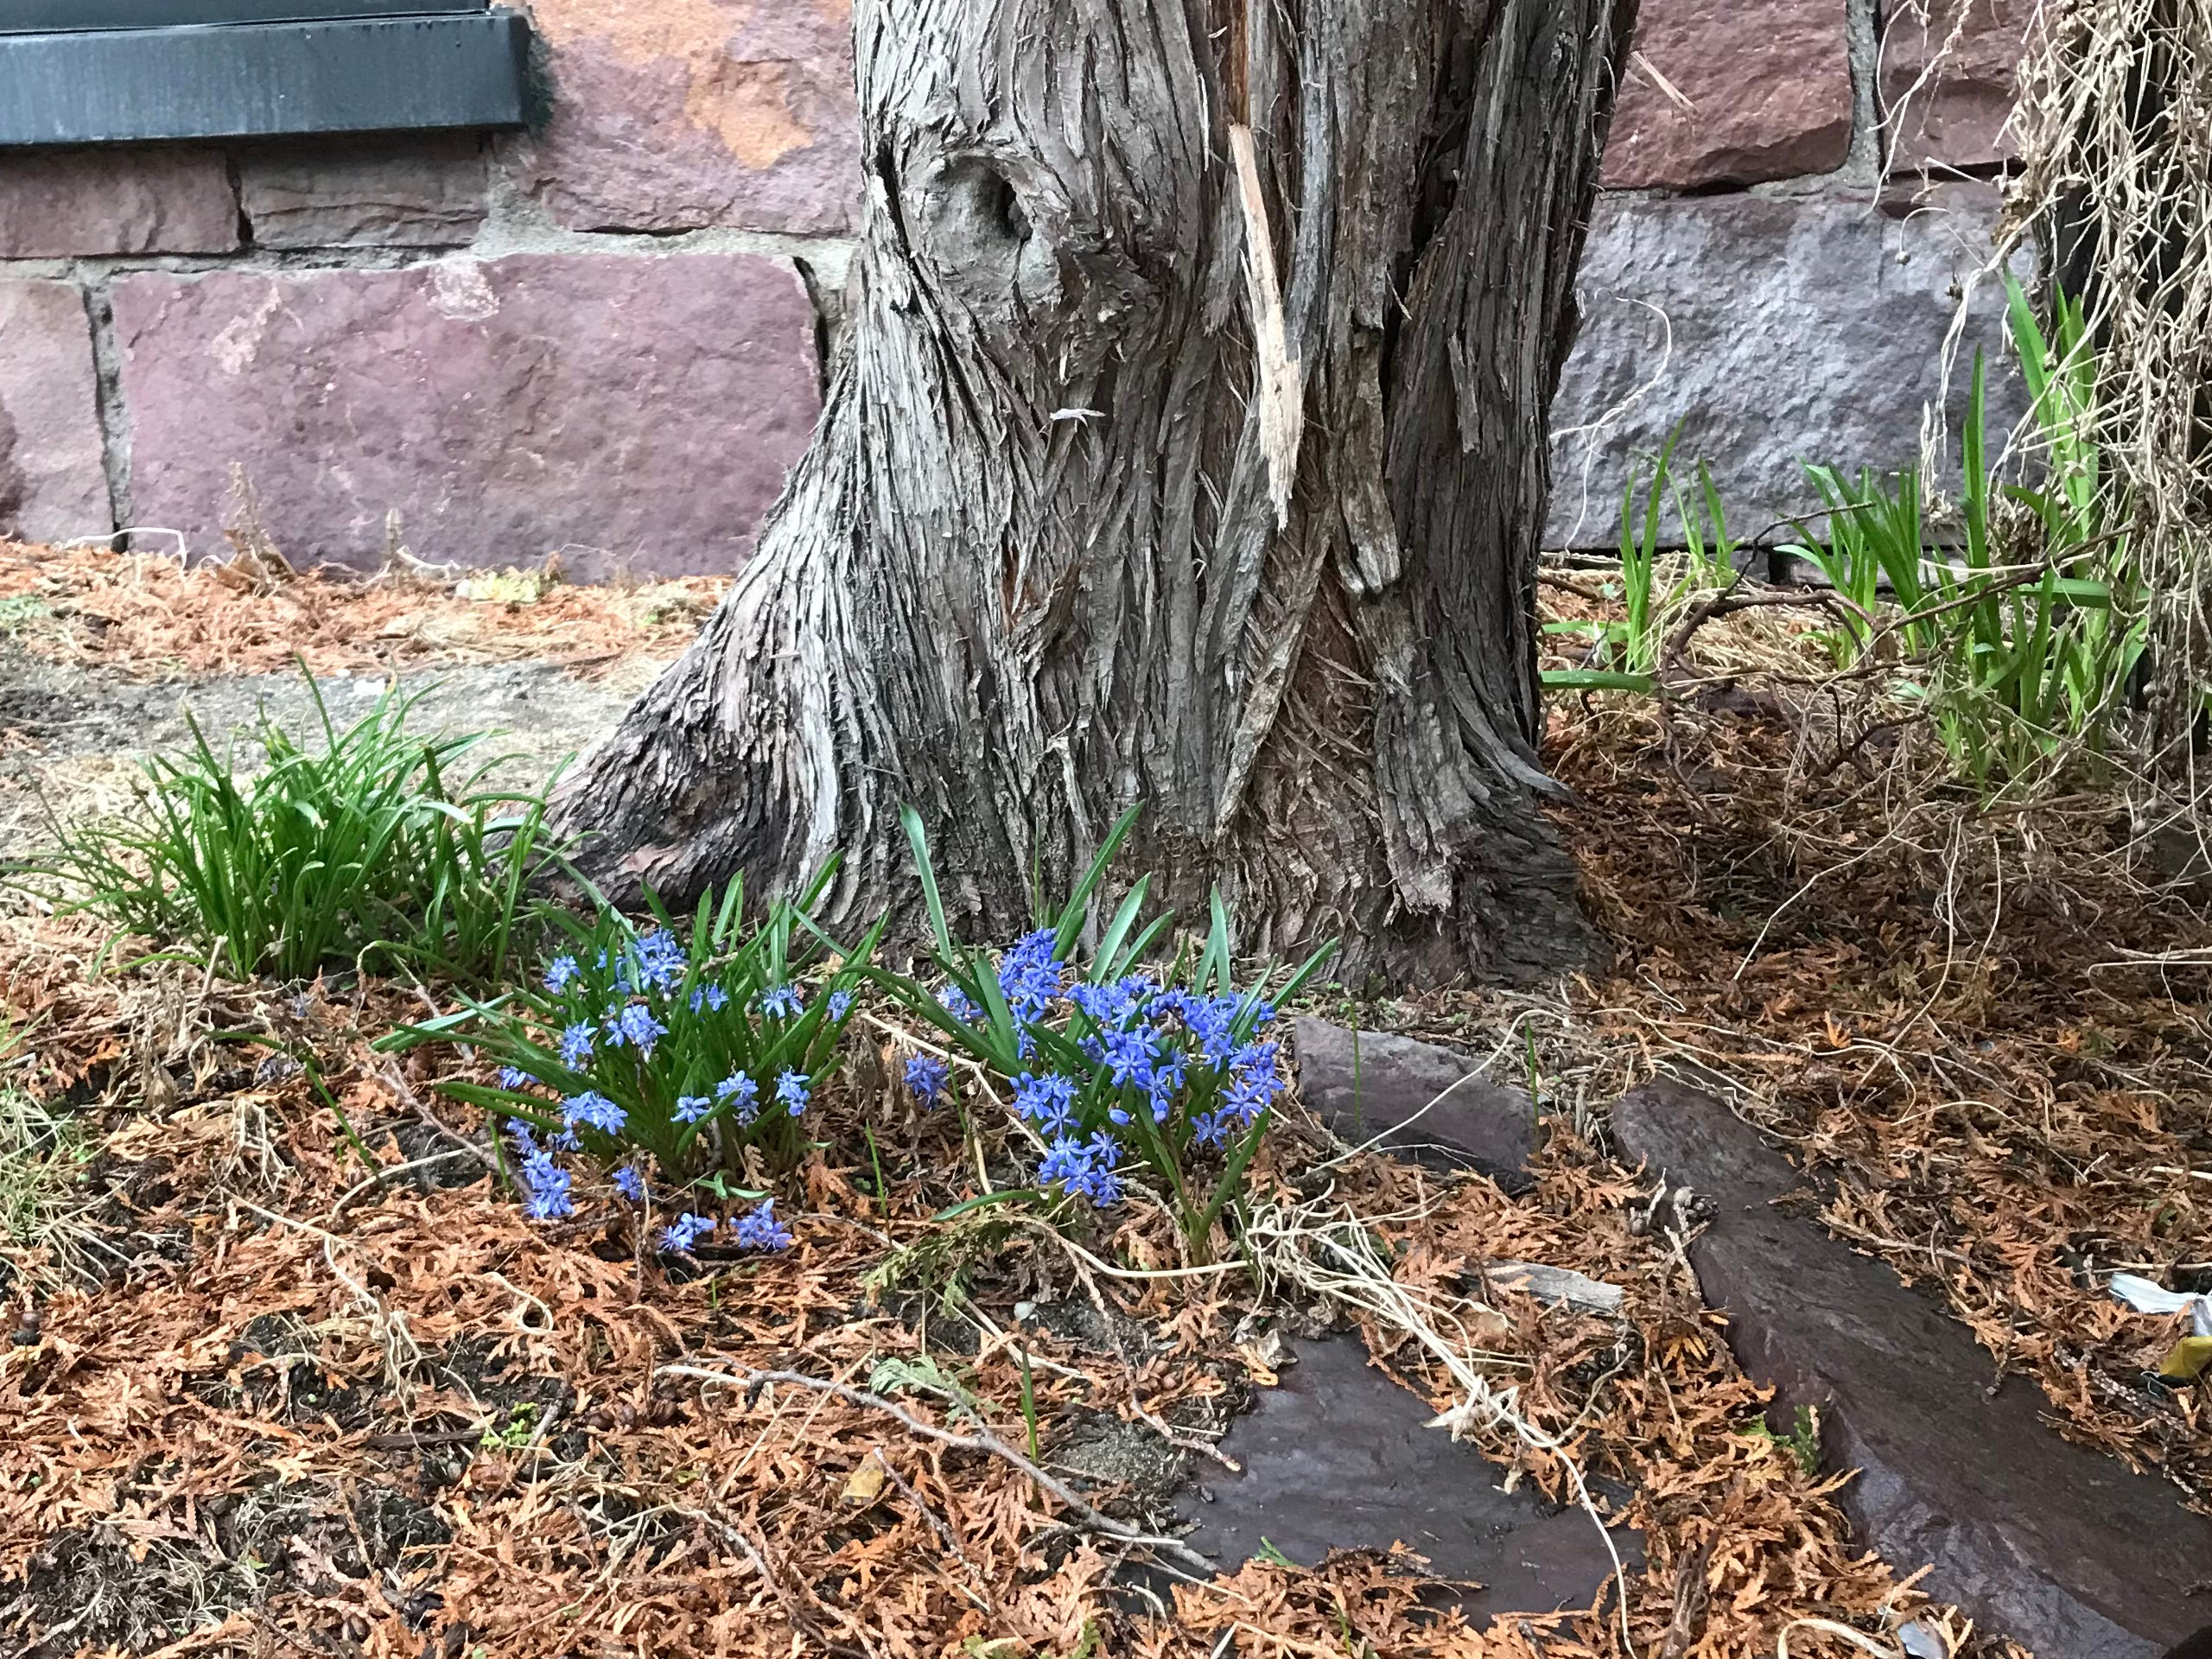 Siberian squill emerges from beneath a cedar tree at the sun-drenched corner of Pine and Main streets in Burlington on Monday, April 8, 2019